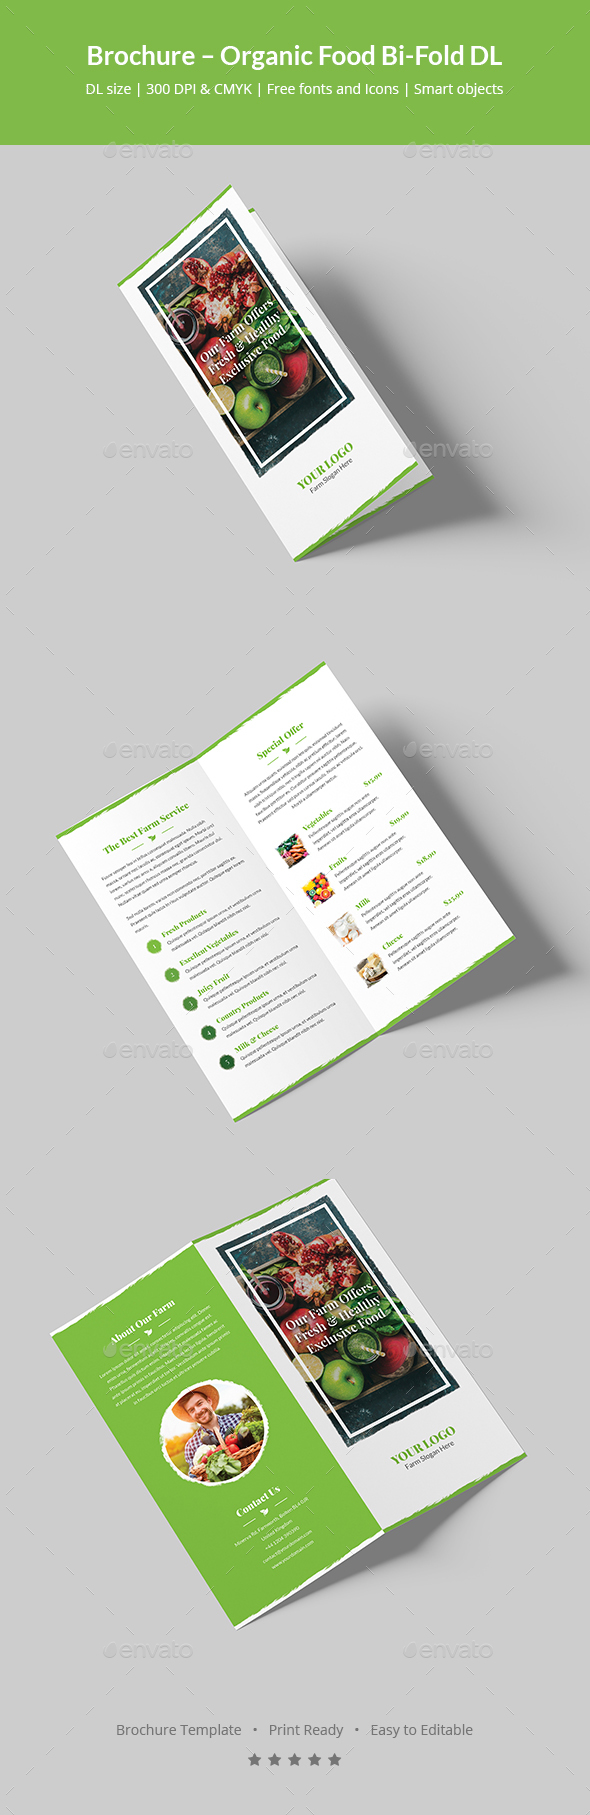 dl brochure template - brochure organic food bi fold dl by artbart graphicriver